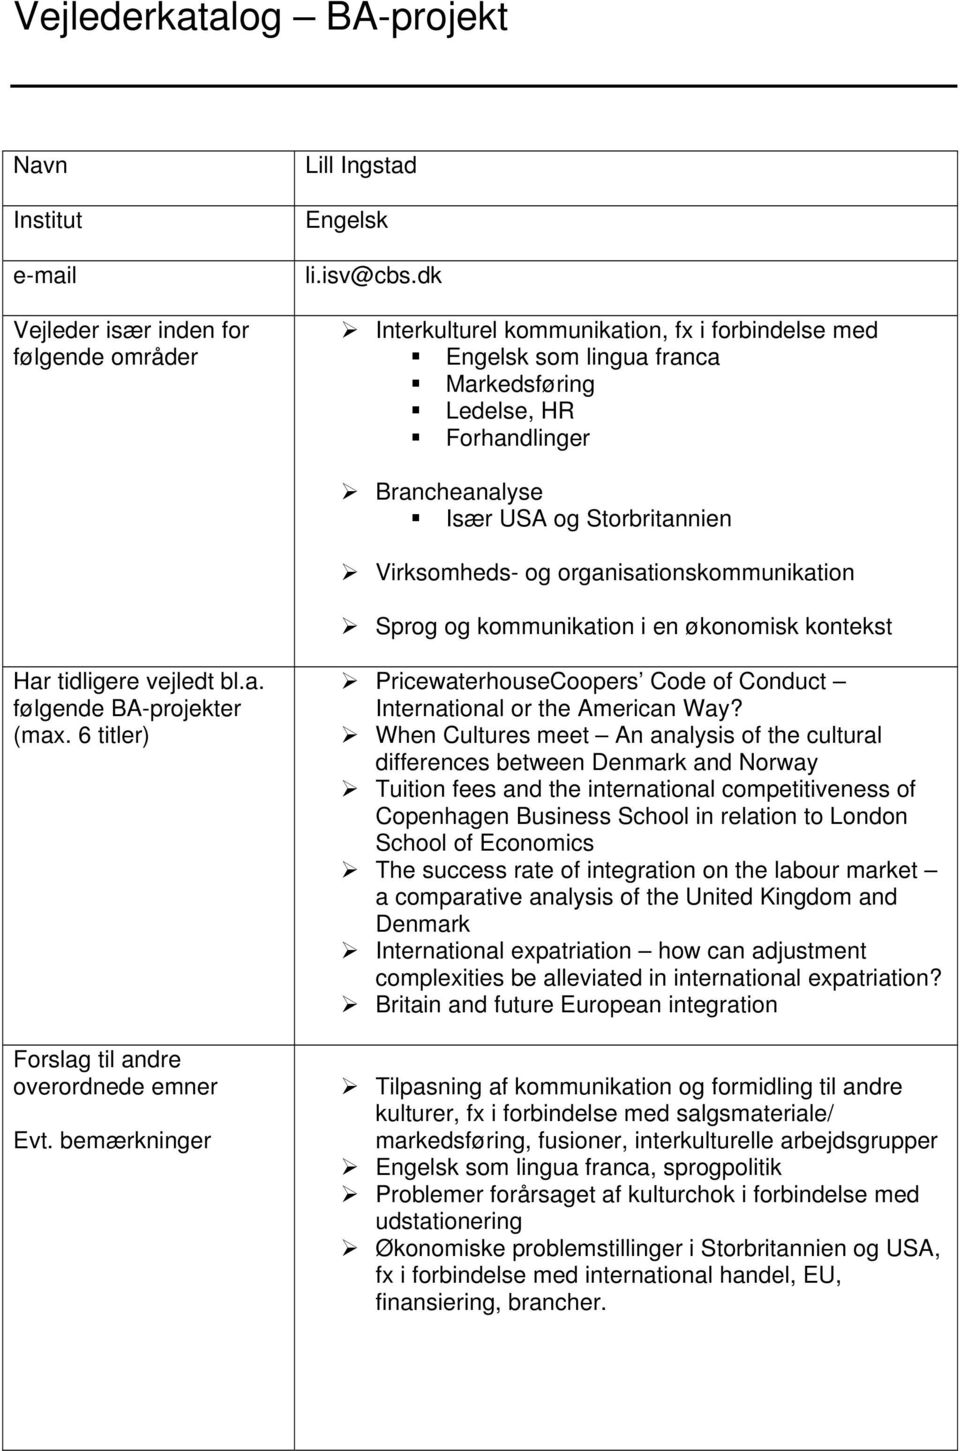 organisationskommunikation Sprog og kommunikation i en økonomisk kontekst bl.a. følgende BA-projekter PricewaterhouseCoopers Code of Conduct International or the American Way?